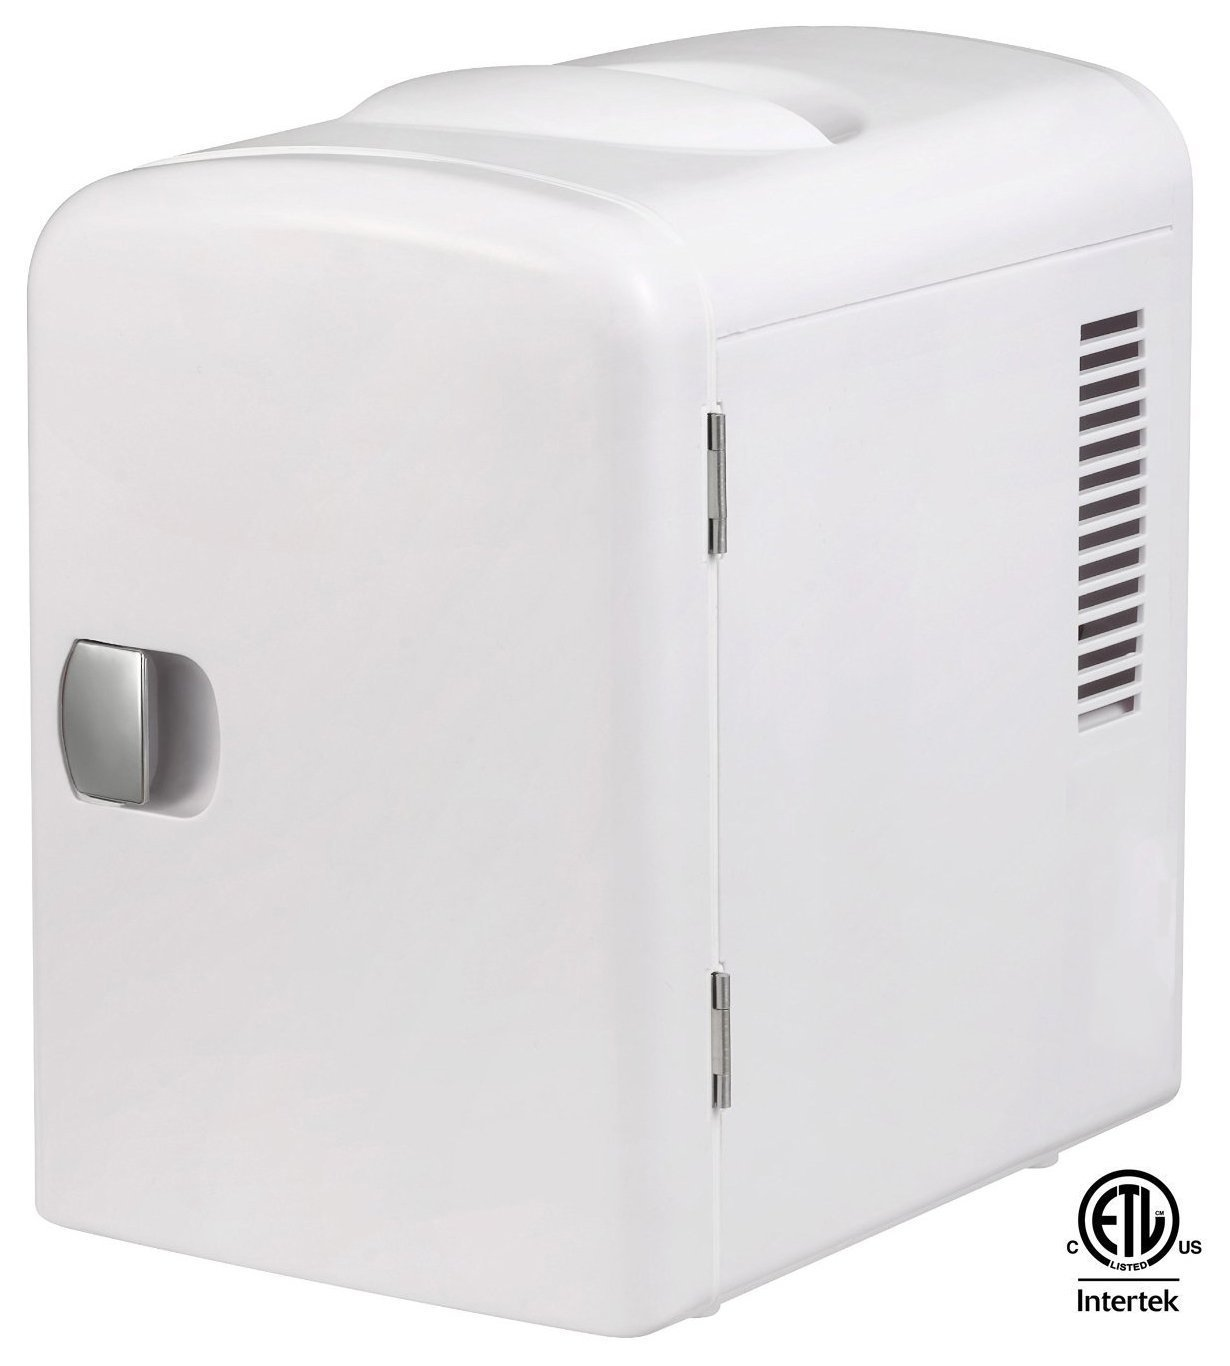 Gourmia GMF600 Thermoelectric Mini Fridge Cooler and Warmer - 4 Liter/6 Can - For Home,Office, Car, Dorm or Boat - Compact & Portable - AC & DC Power Cords - White